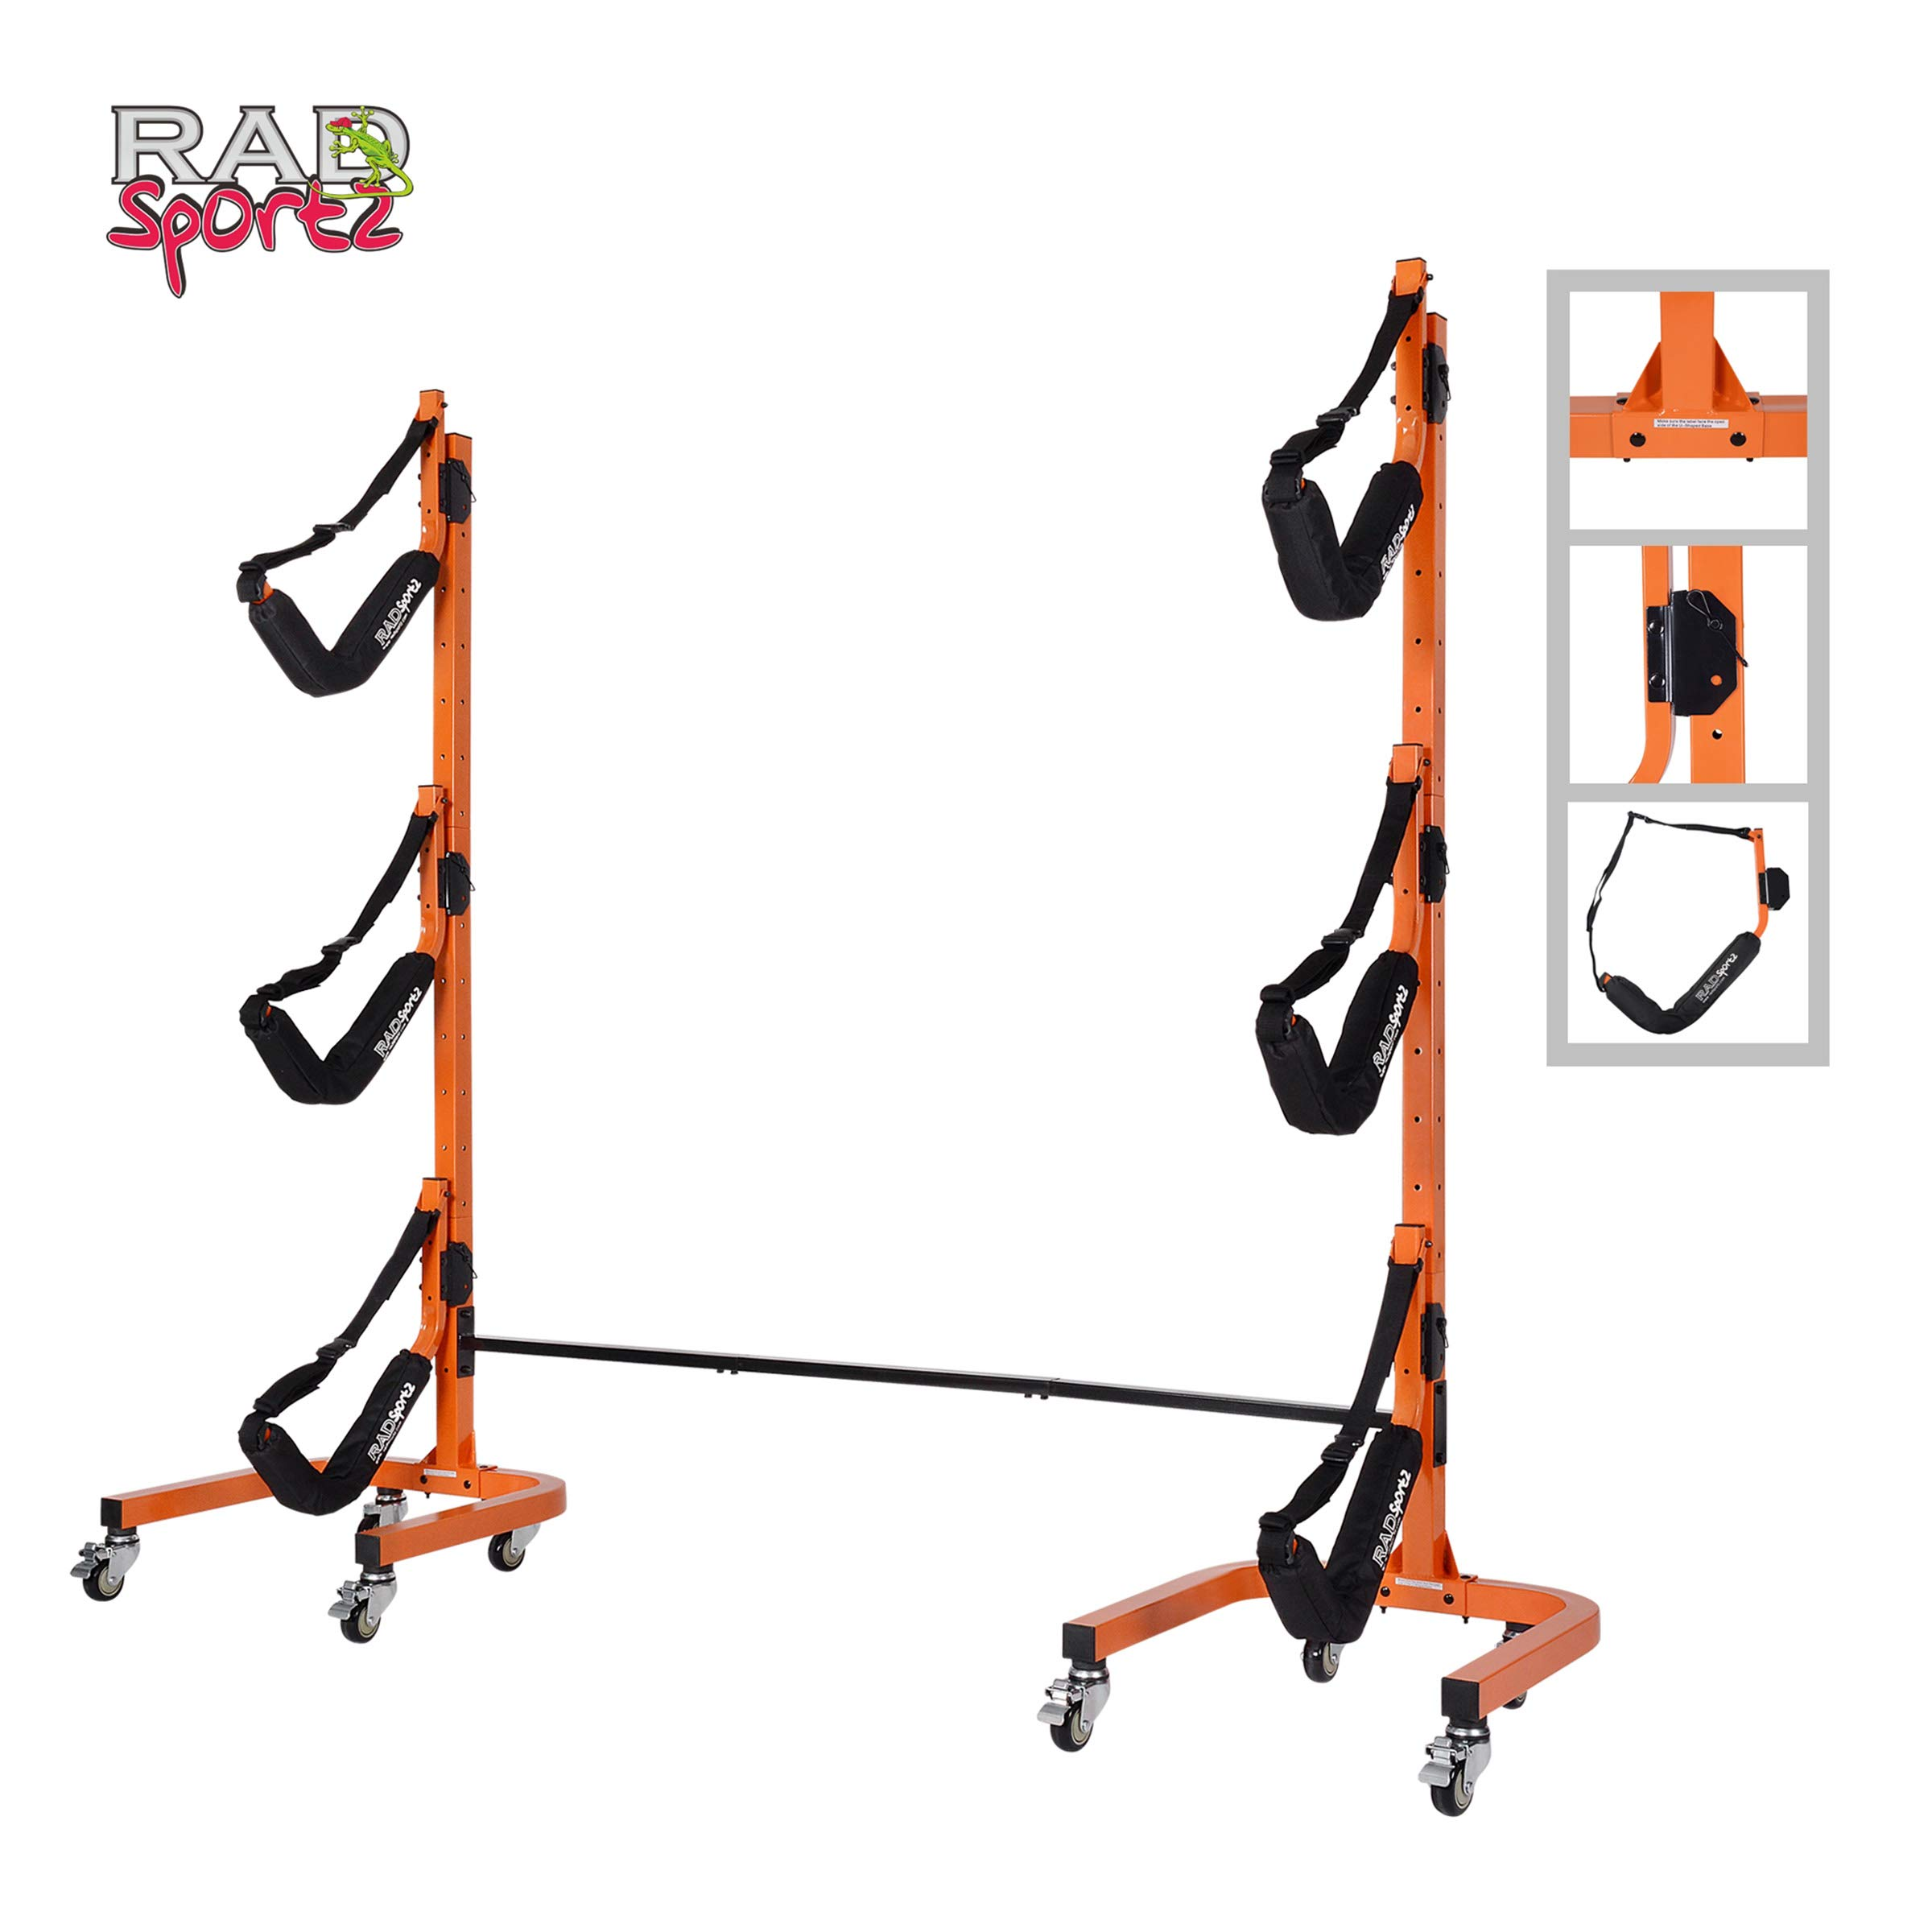 Rad Sportz Rolling Rack Storage-Self Standing Three Canoe Kayak Cradle-Adjustable Safety Strap and Wheels for Mobility-Indoor Outdoor use